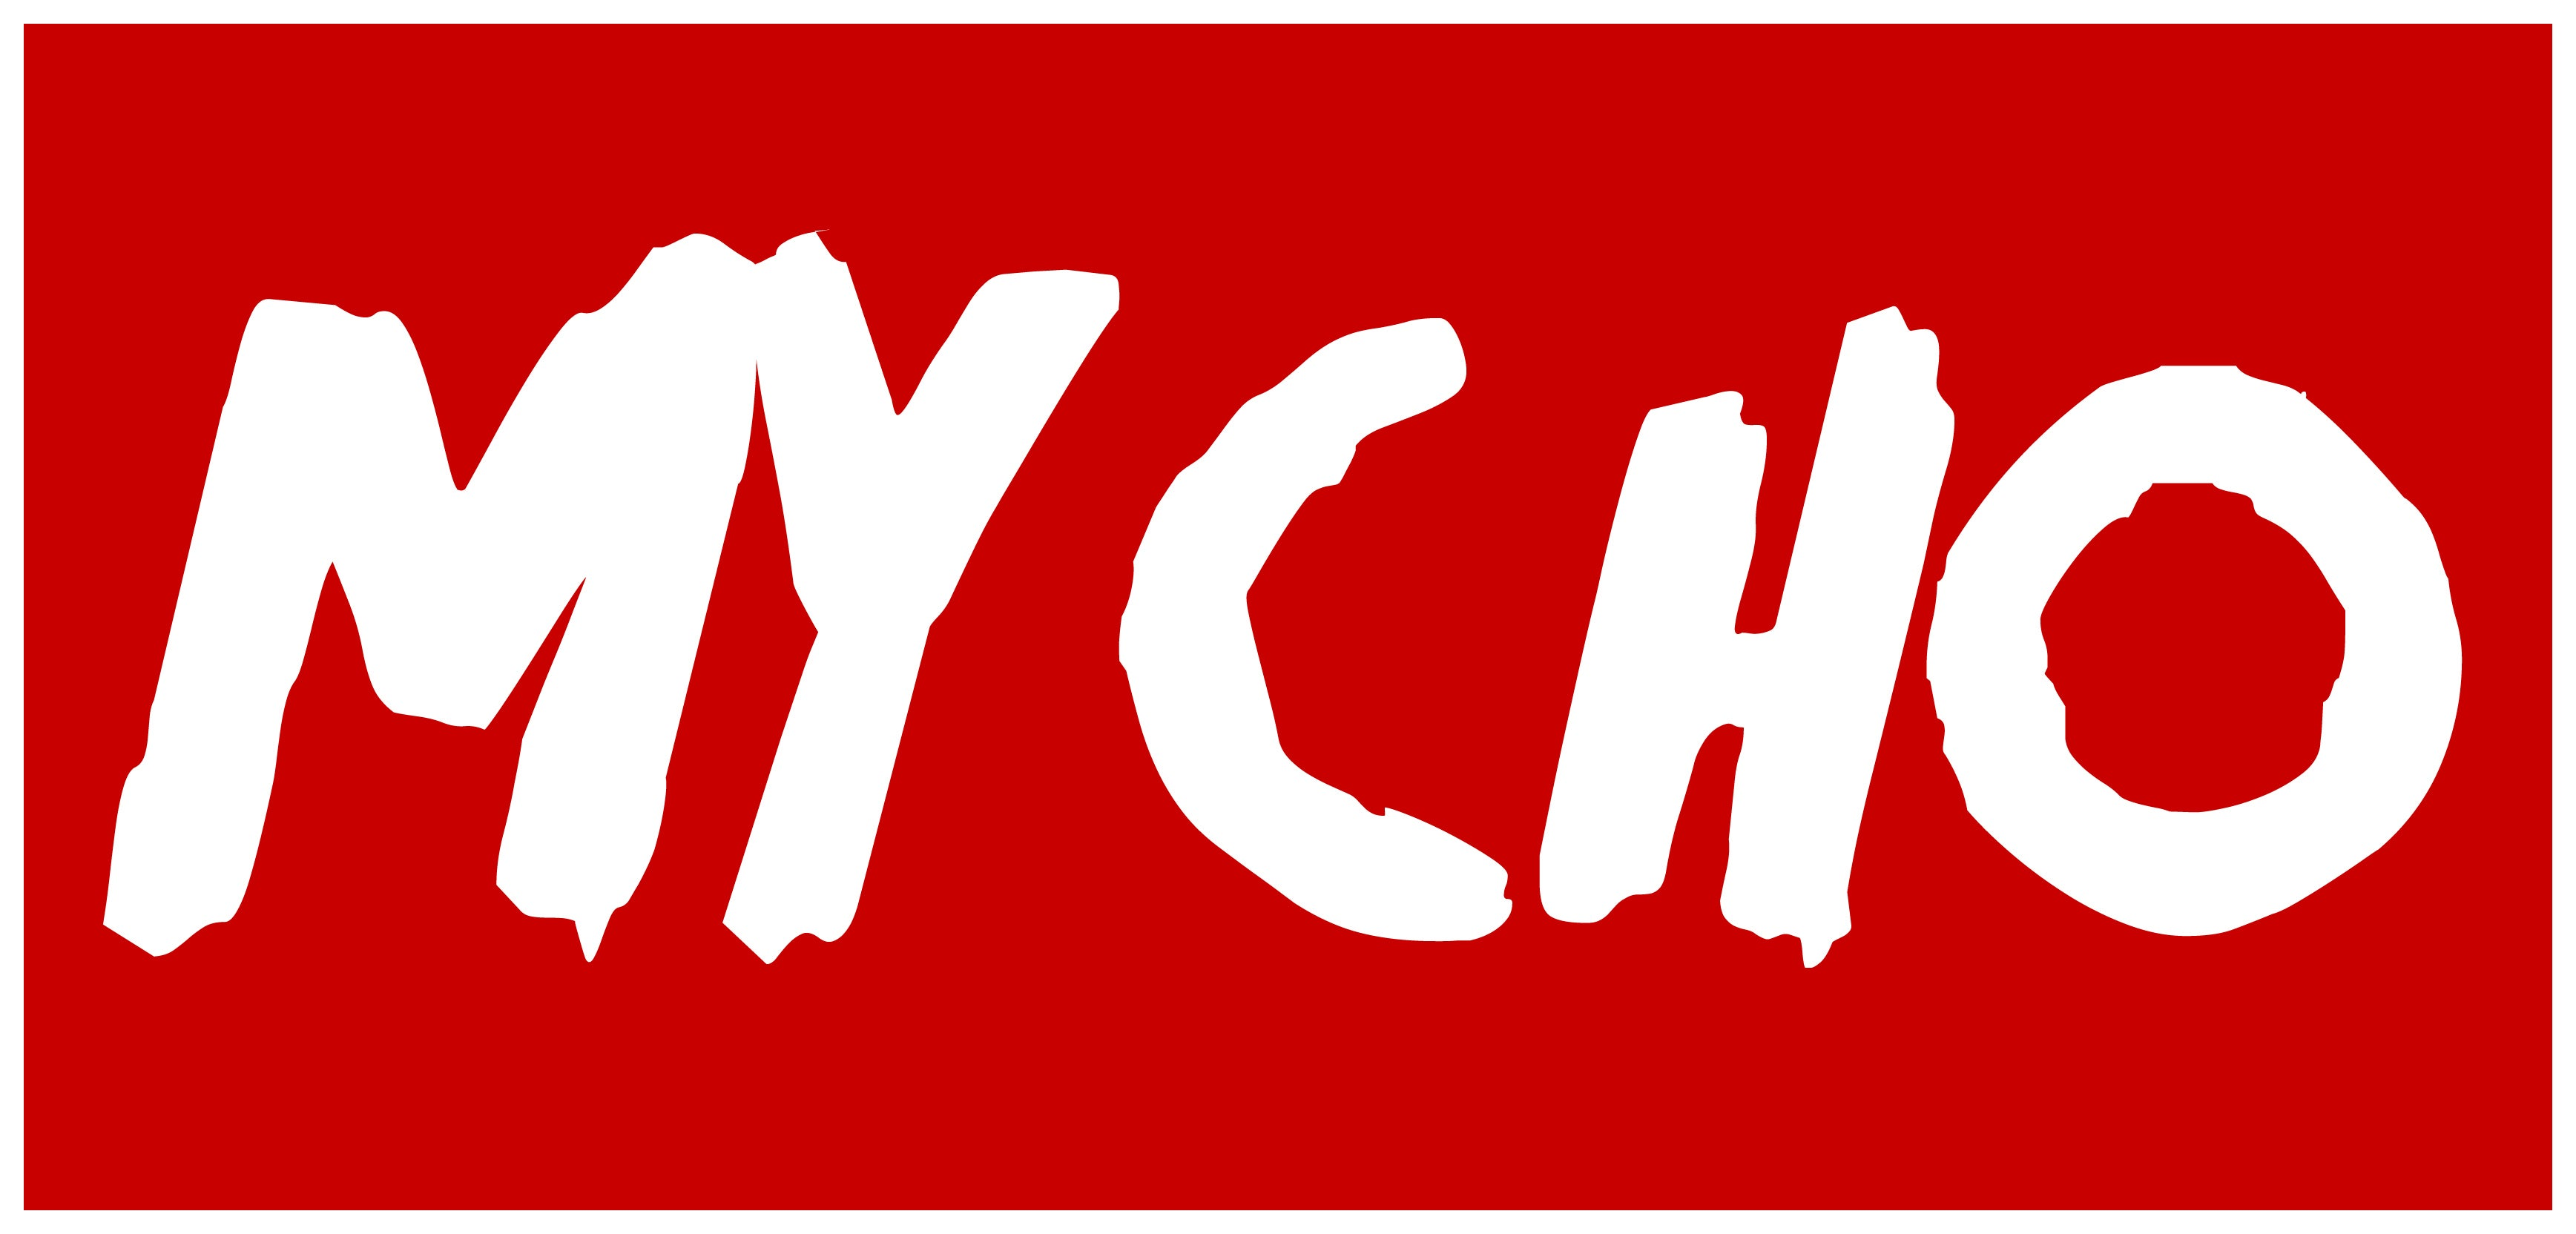 Mycho Entertainment